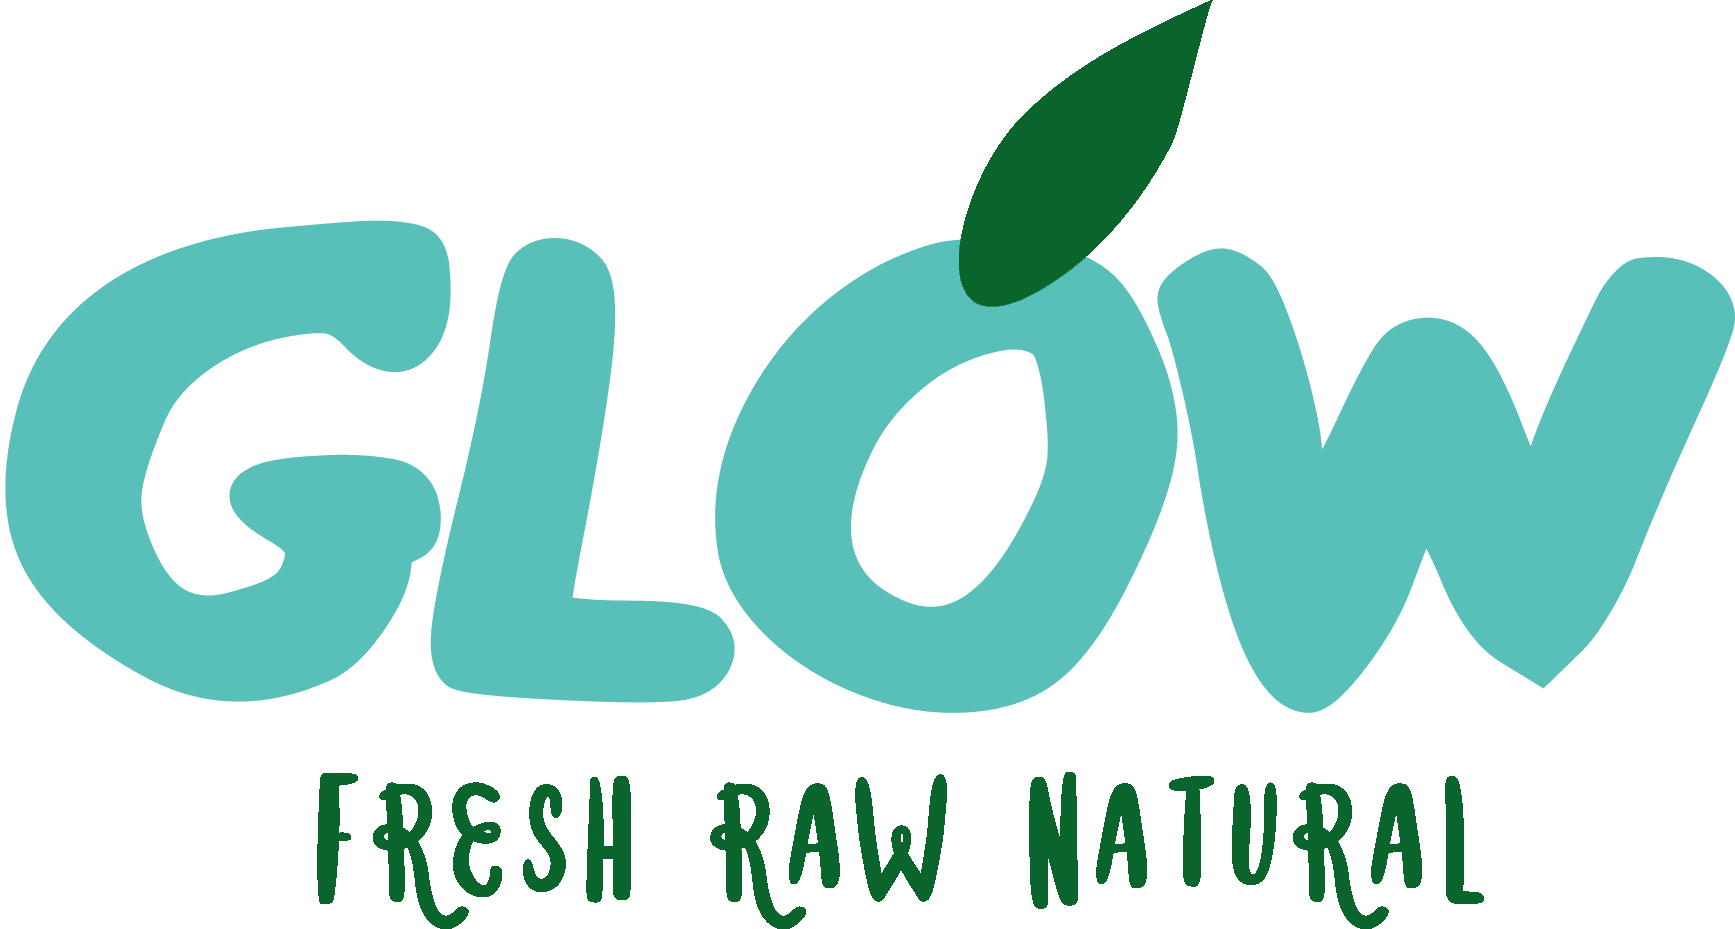 Glow Healthy Smoothies and Snacks 10% OFF Image